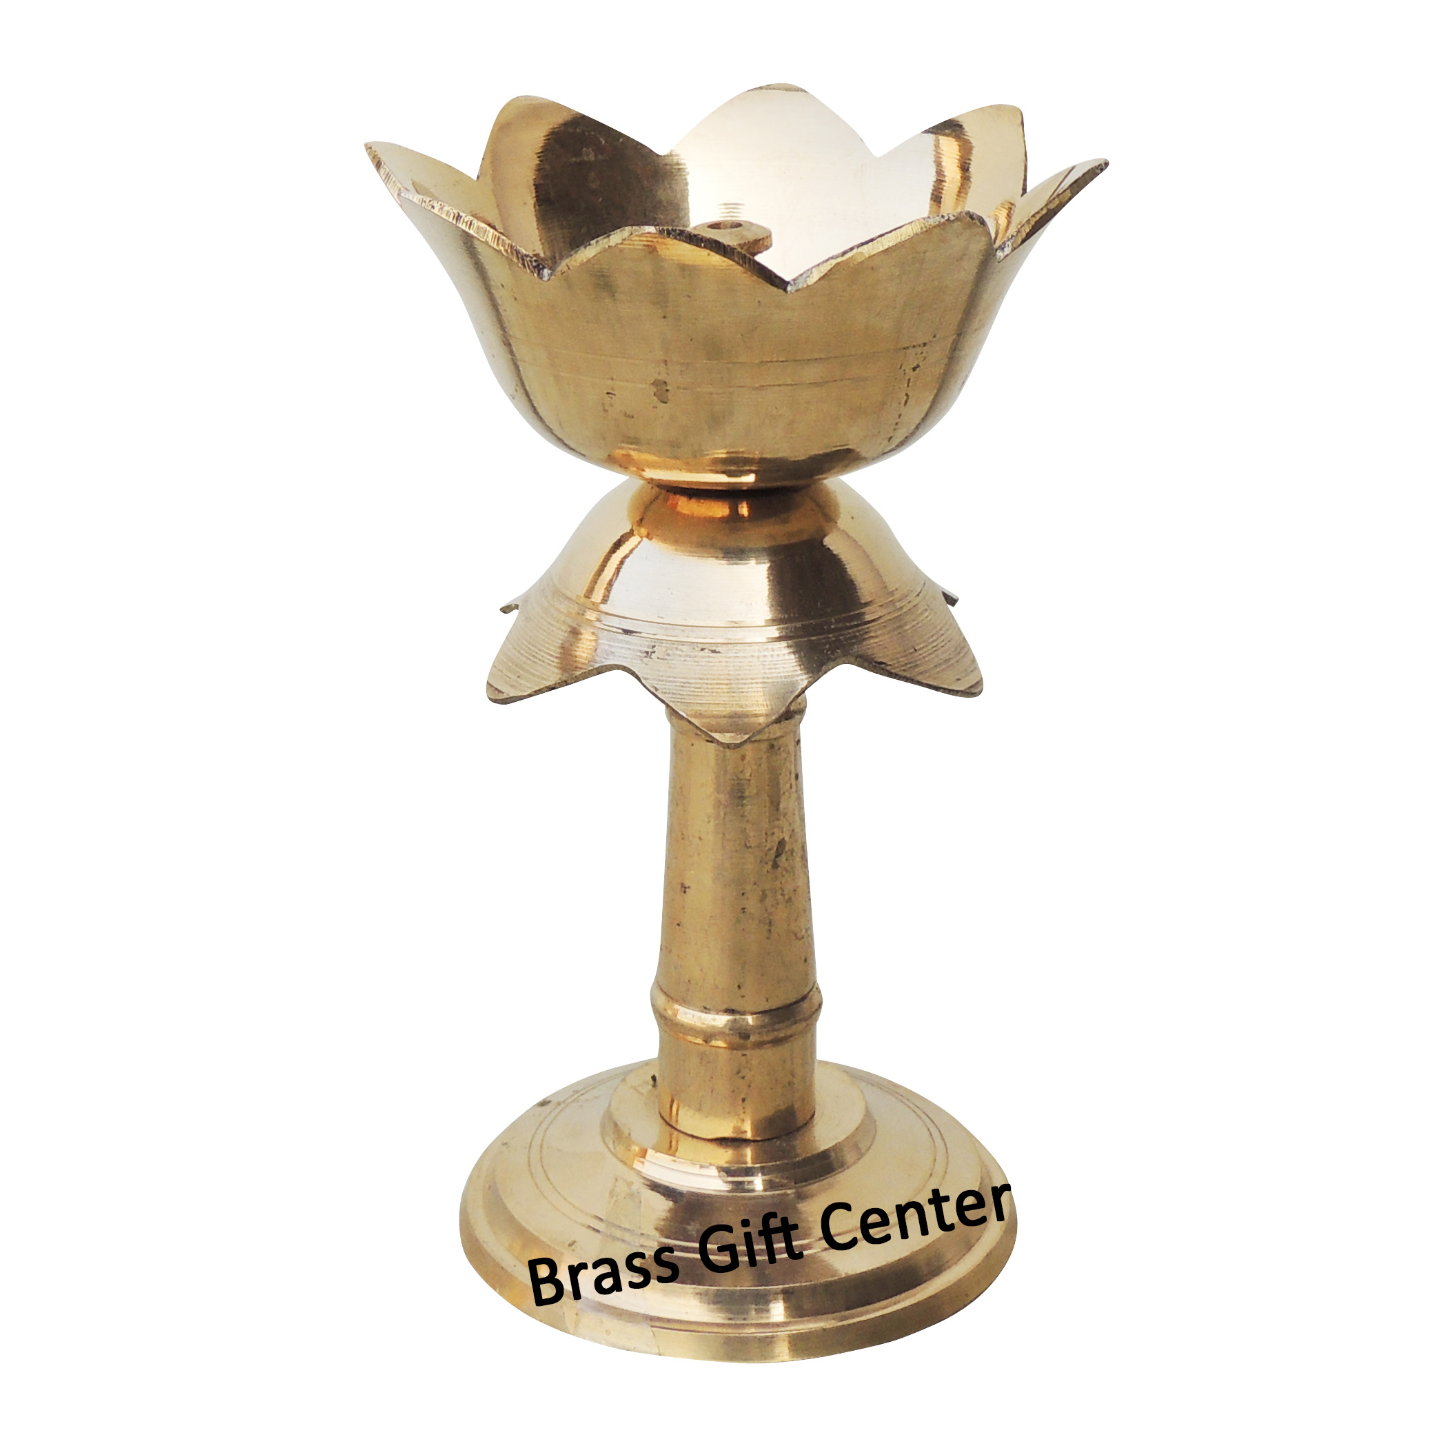 Brass Lotus Shape Deepak With Stand In Brass Finish - 5.5 Inch F634 E